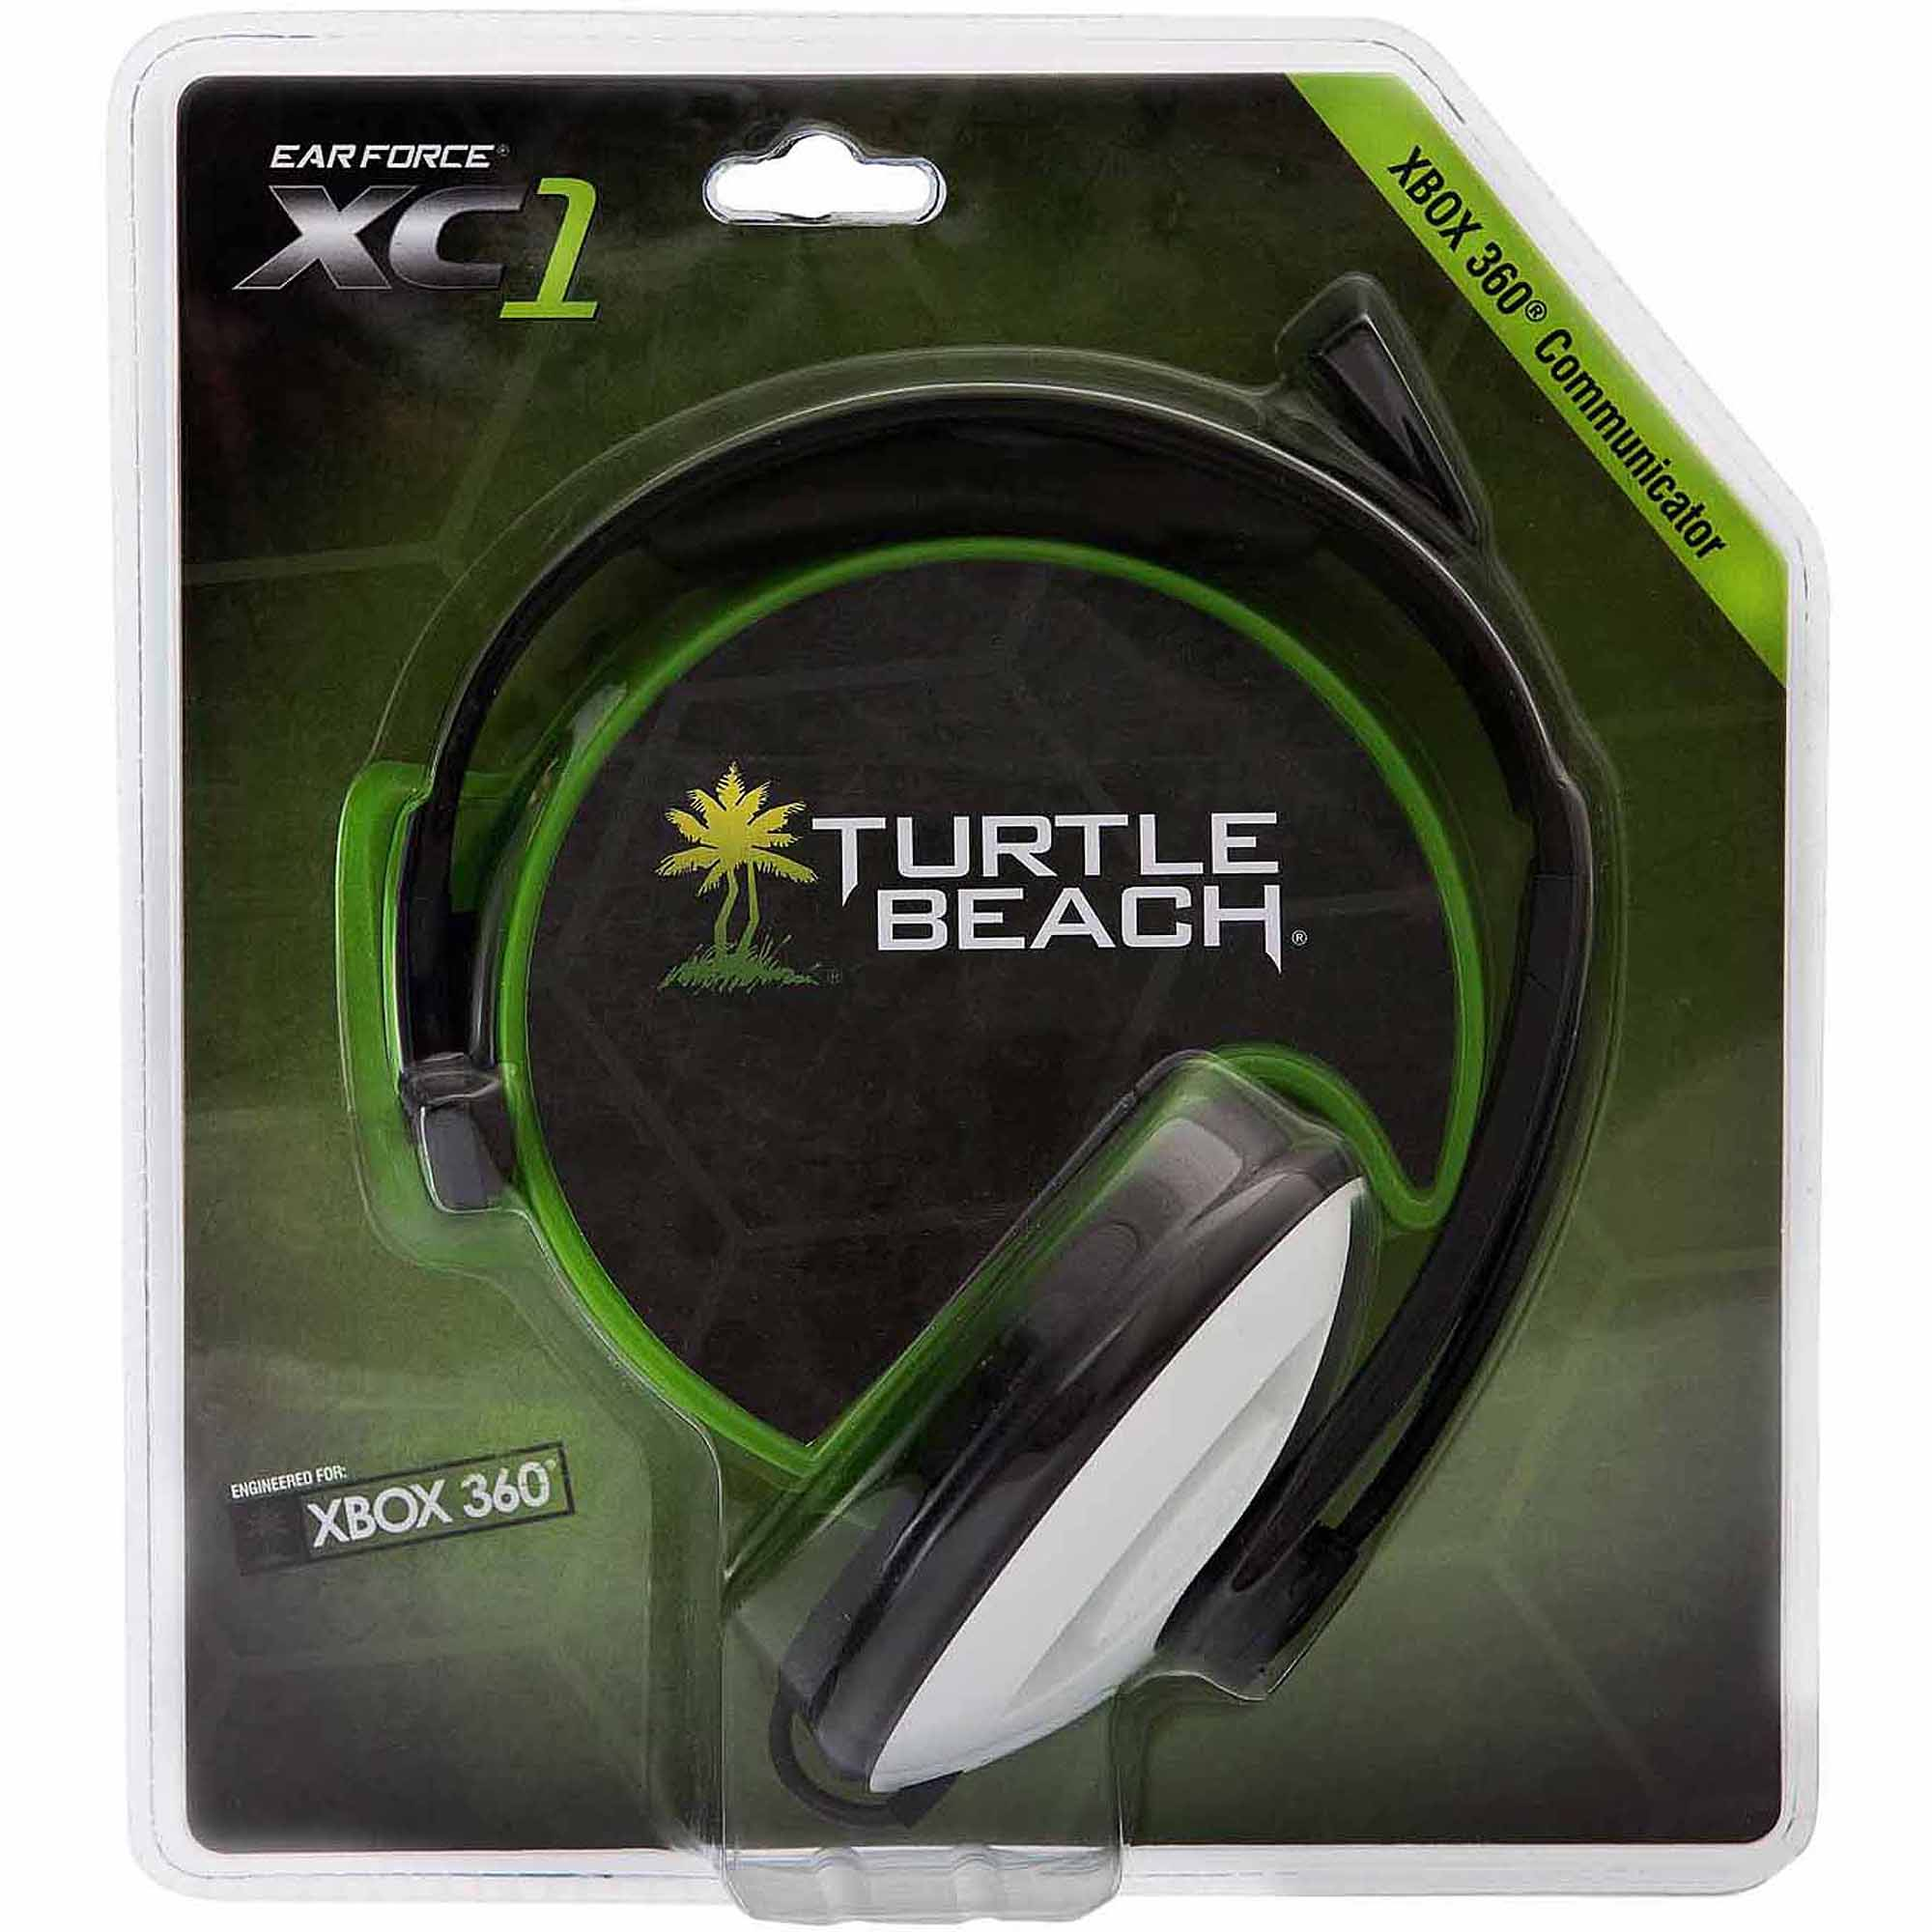 Turtle Beach FG Ear Force XC1, Refurbished (Xbox 360)